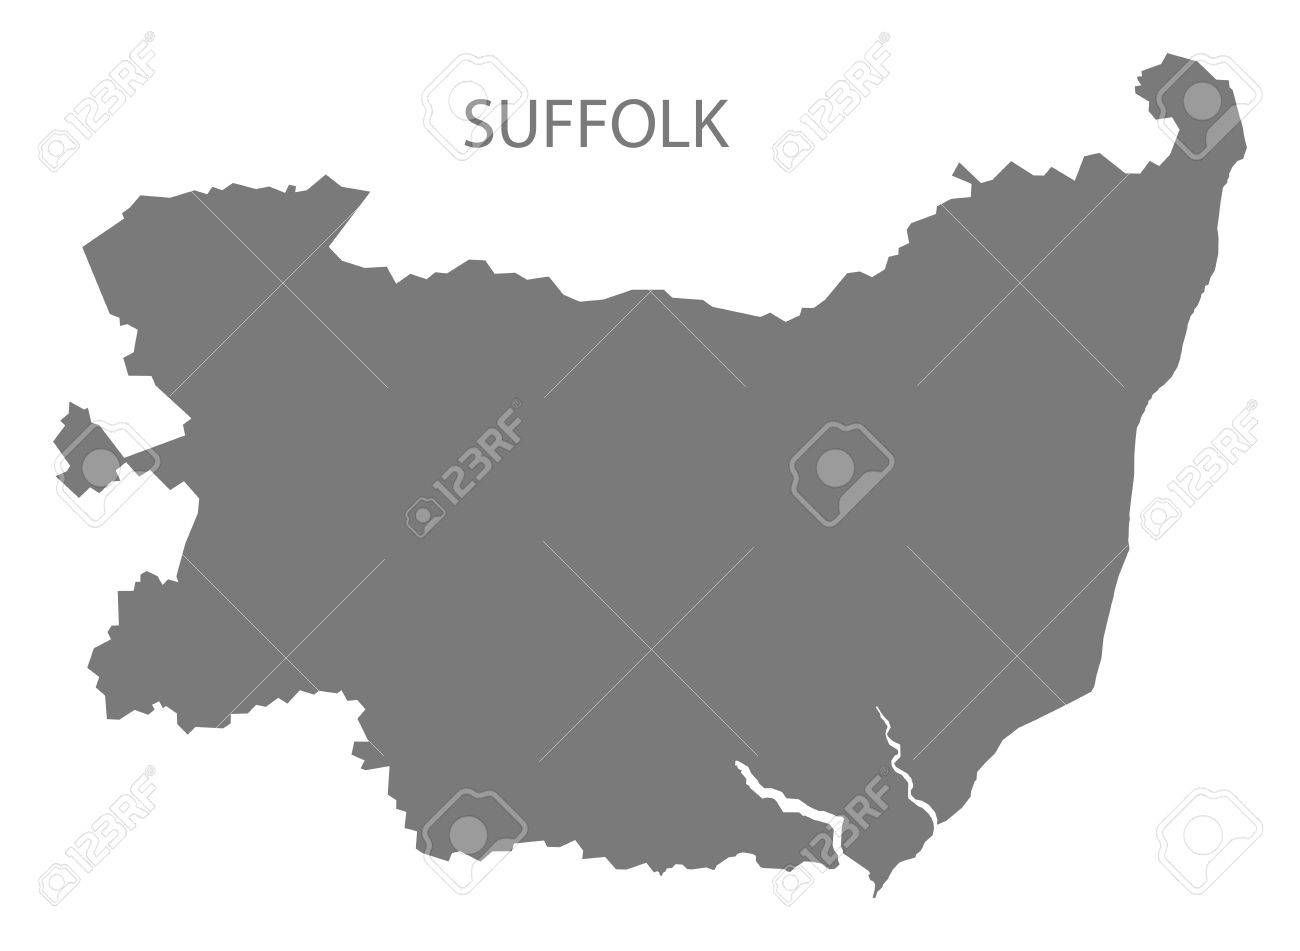 County Map Of England.Suffolk County Map England Uk Grey Illustration Silhouette Shape